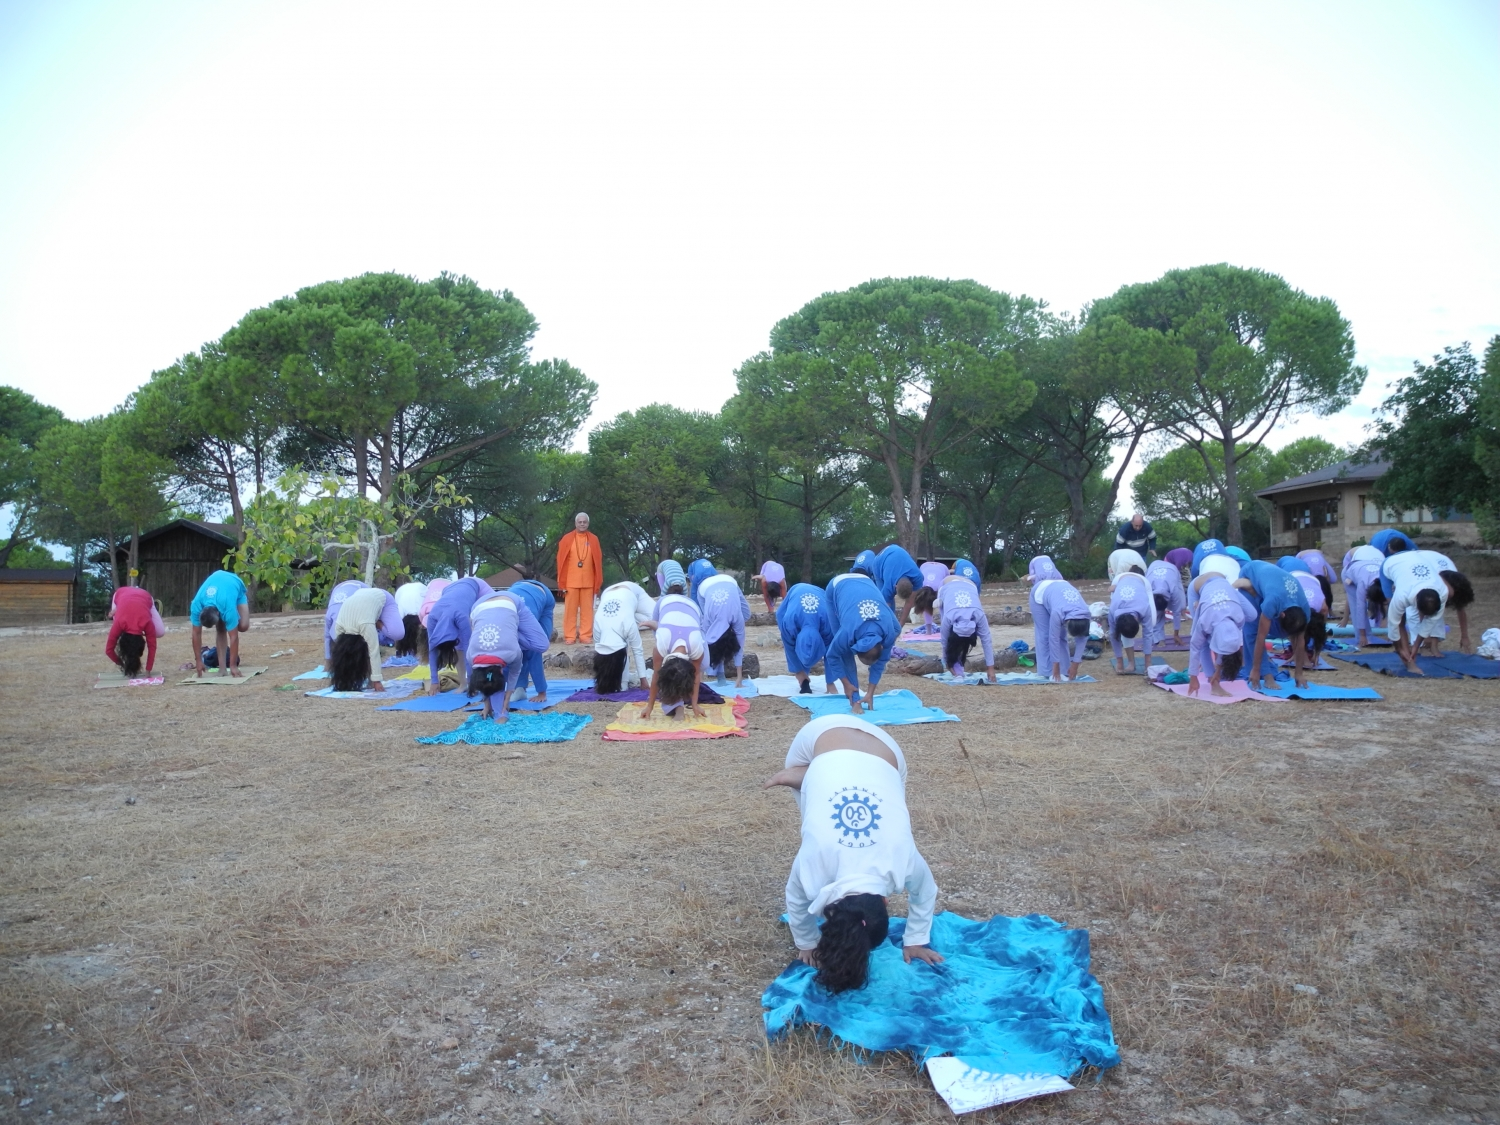 Semana Intensiva do Yoga - 2013 - Quinta da Calma, Algarve